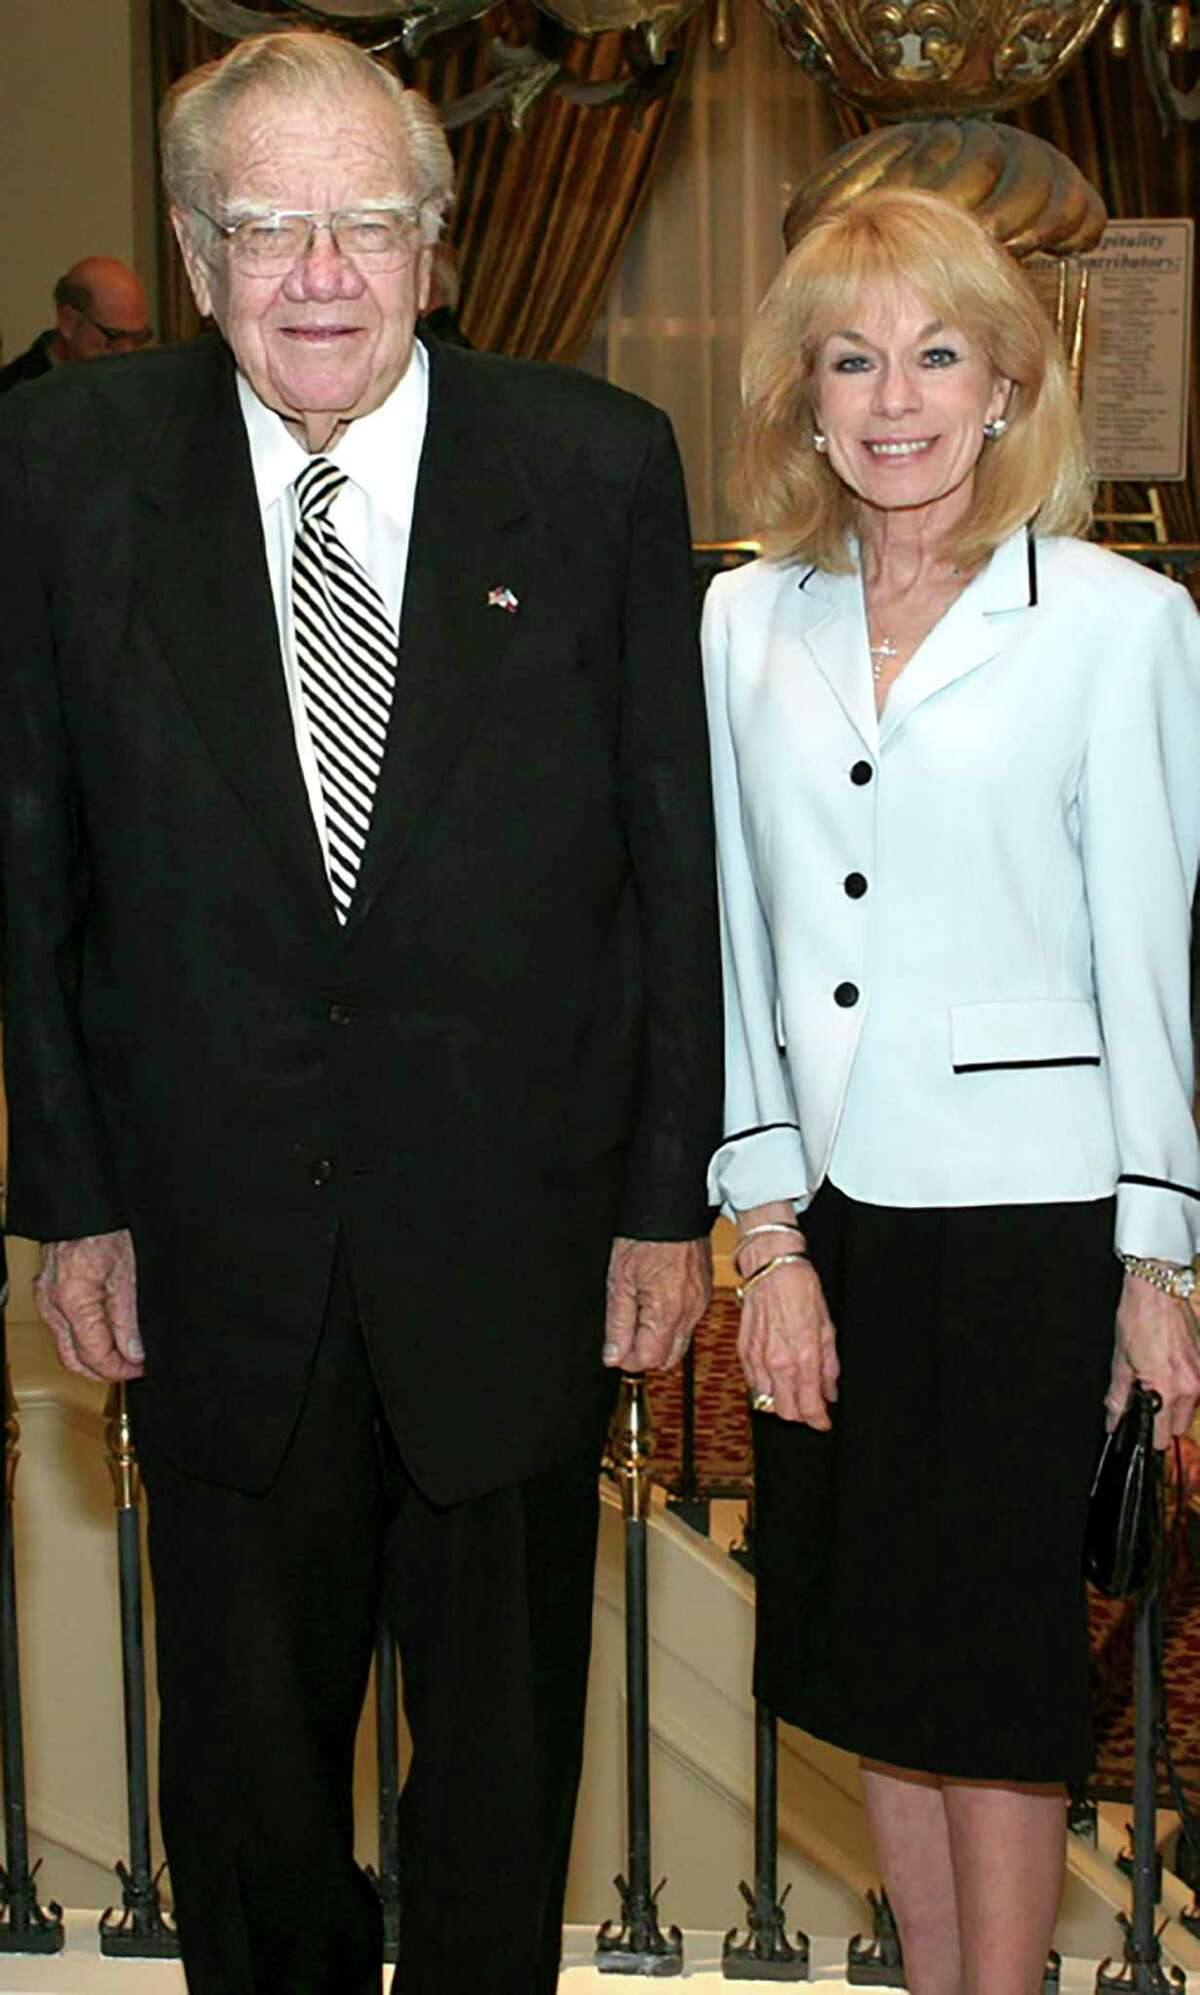 Former Texas Gov. Dolph Briscoe and his daughter Janey Marmion attend an event in San Antonio in 2005.